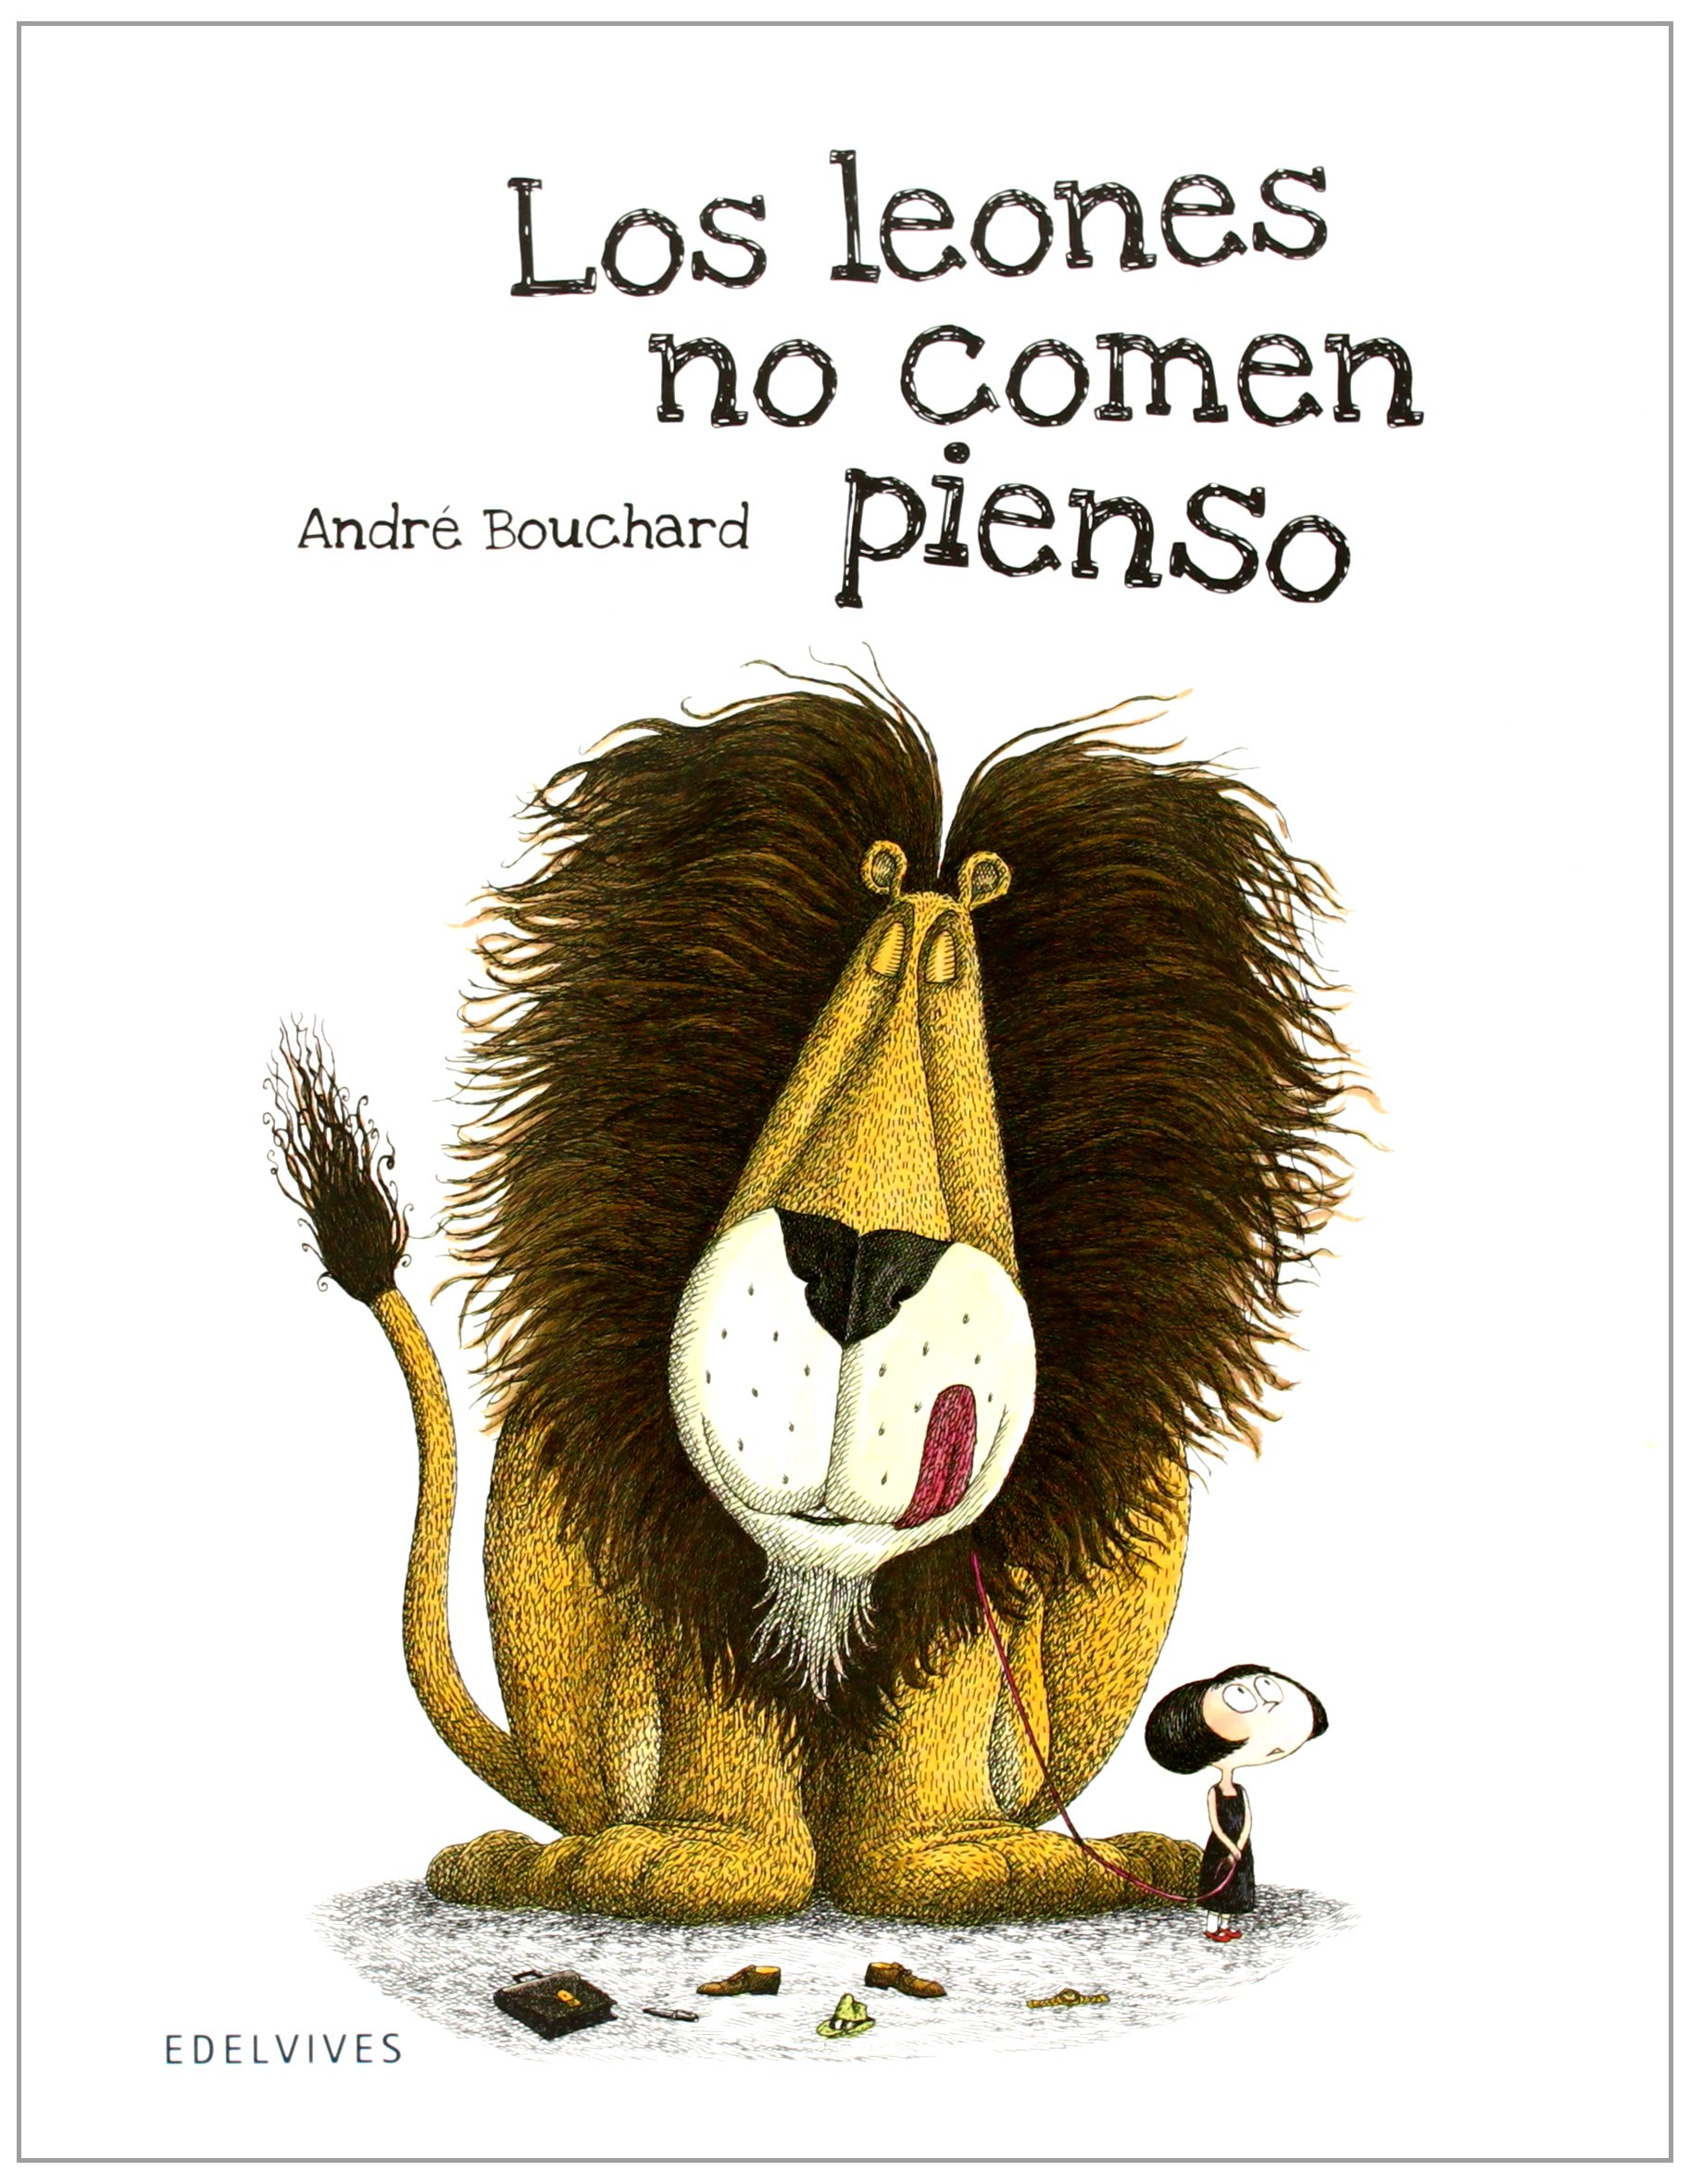 Los leones no comen pienso (Albumes ilustrados / Illustrated albums) (Spanish Edition) (Spanish) Hardcover – July 29, 2016